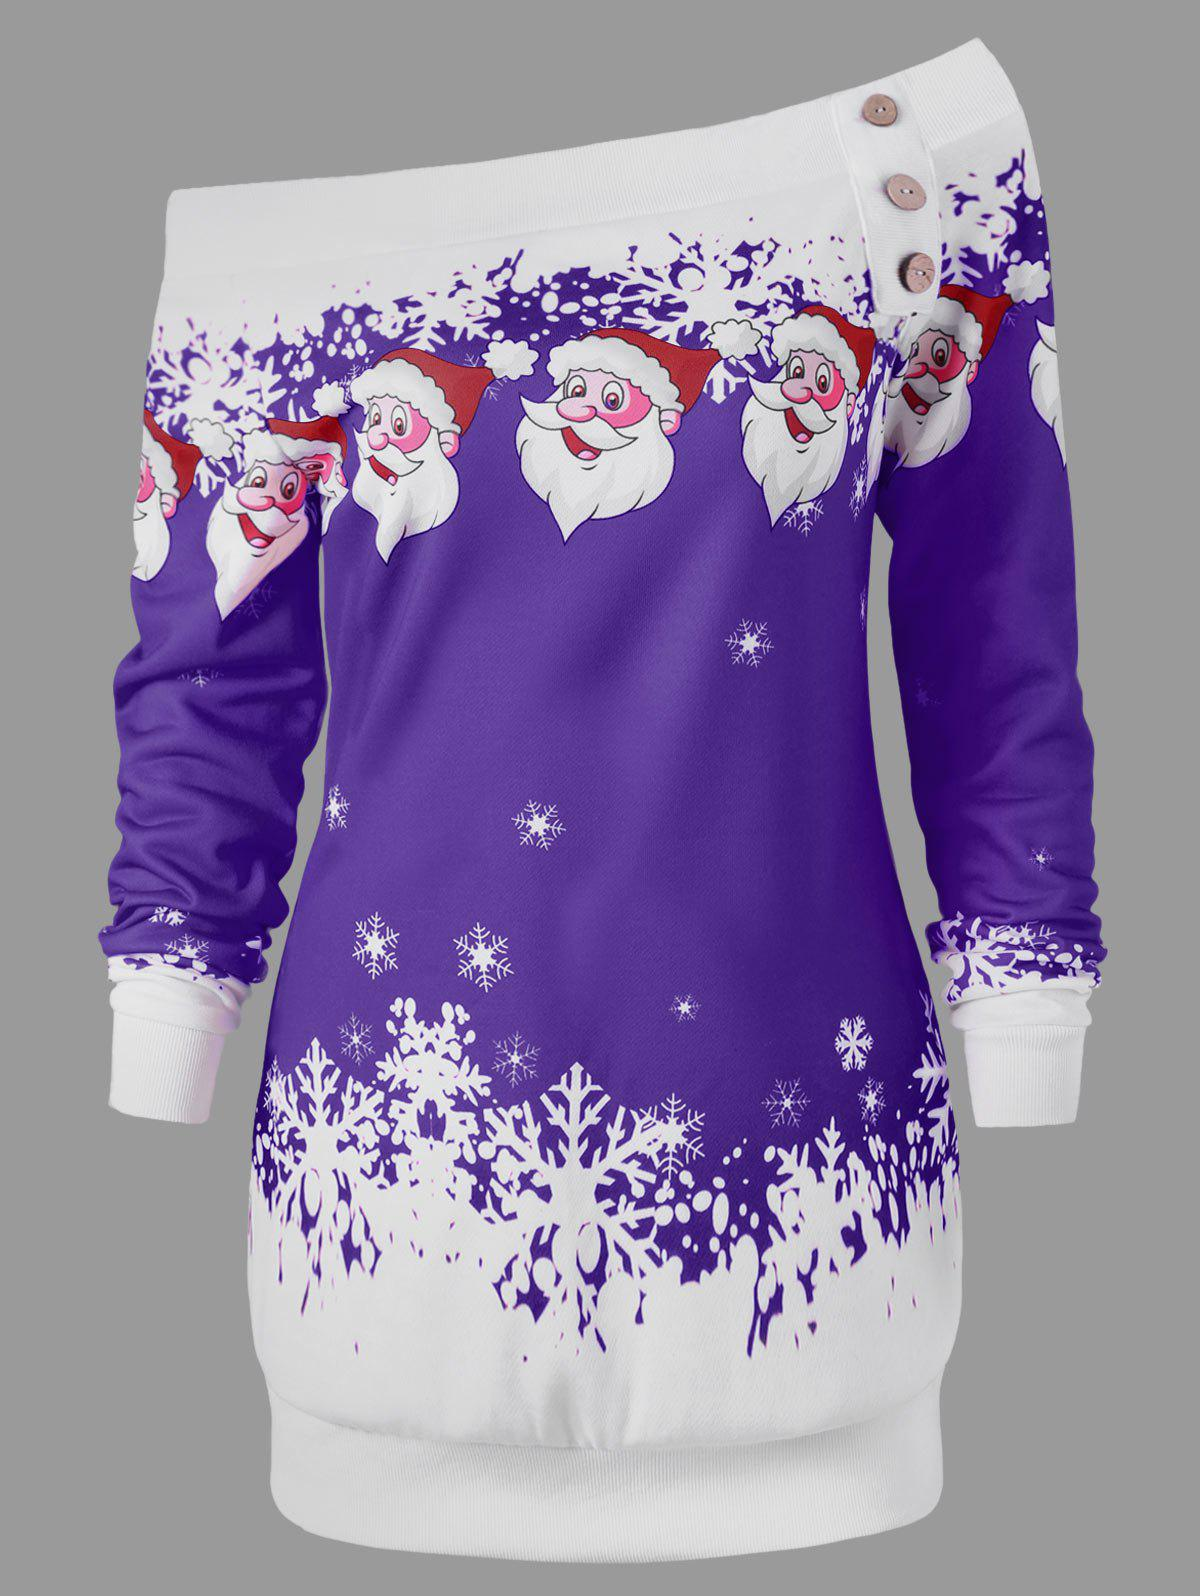 Pullover Santa Claus Snowflake Skew Neck Christmas SweatshirtWOMEN<br><br>Size: 2XL; Color: PURPLE; Material: Polyester,Spandex; Shirt Length: Long; Sleeve Length: Full; Style: Casual; Pattern Style: Character; Embellishment: Button; Season: Fall,Spring,Winter; Weight: 0.3000kg; Package Contents: 1 x Sweatshirt;